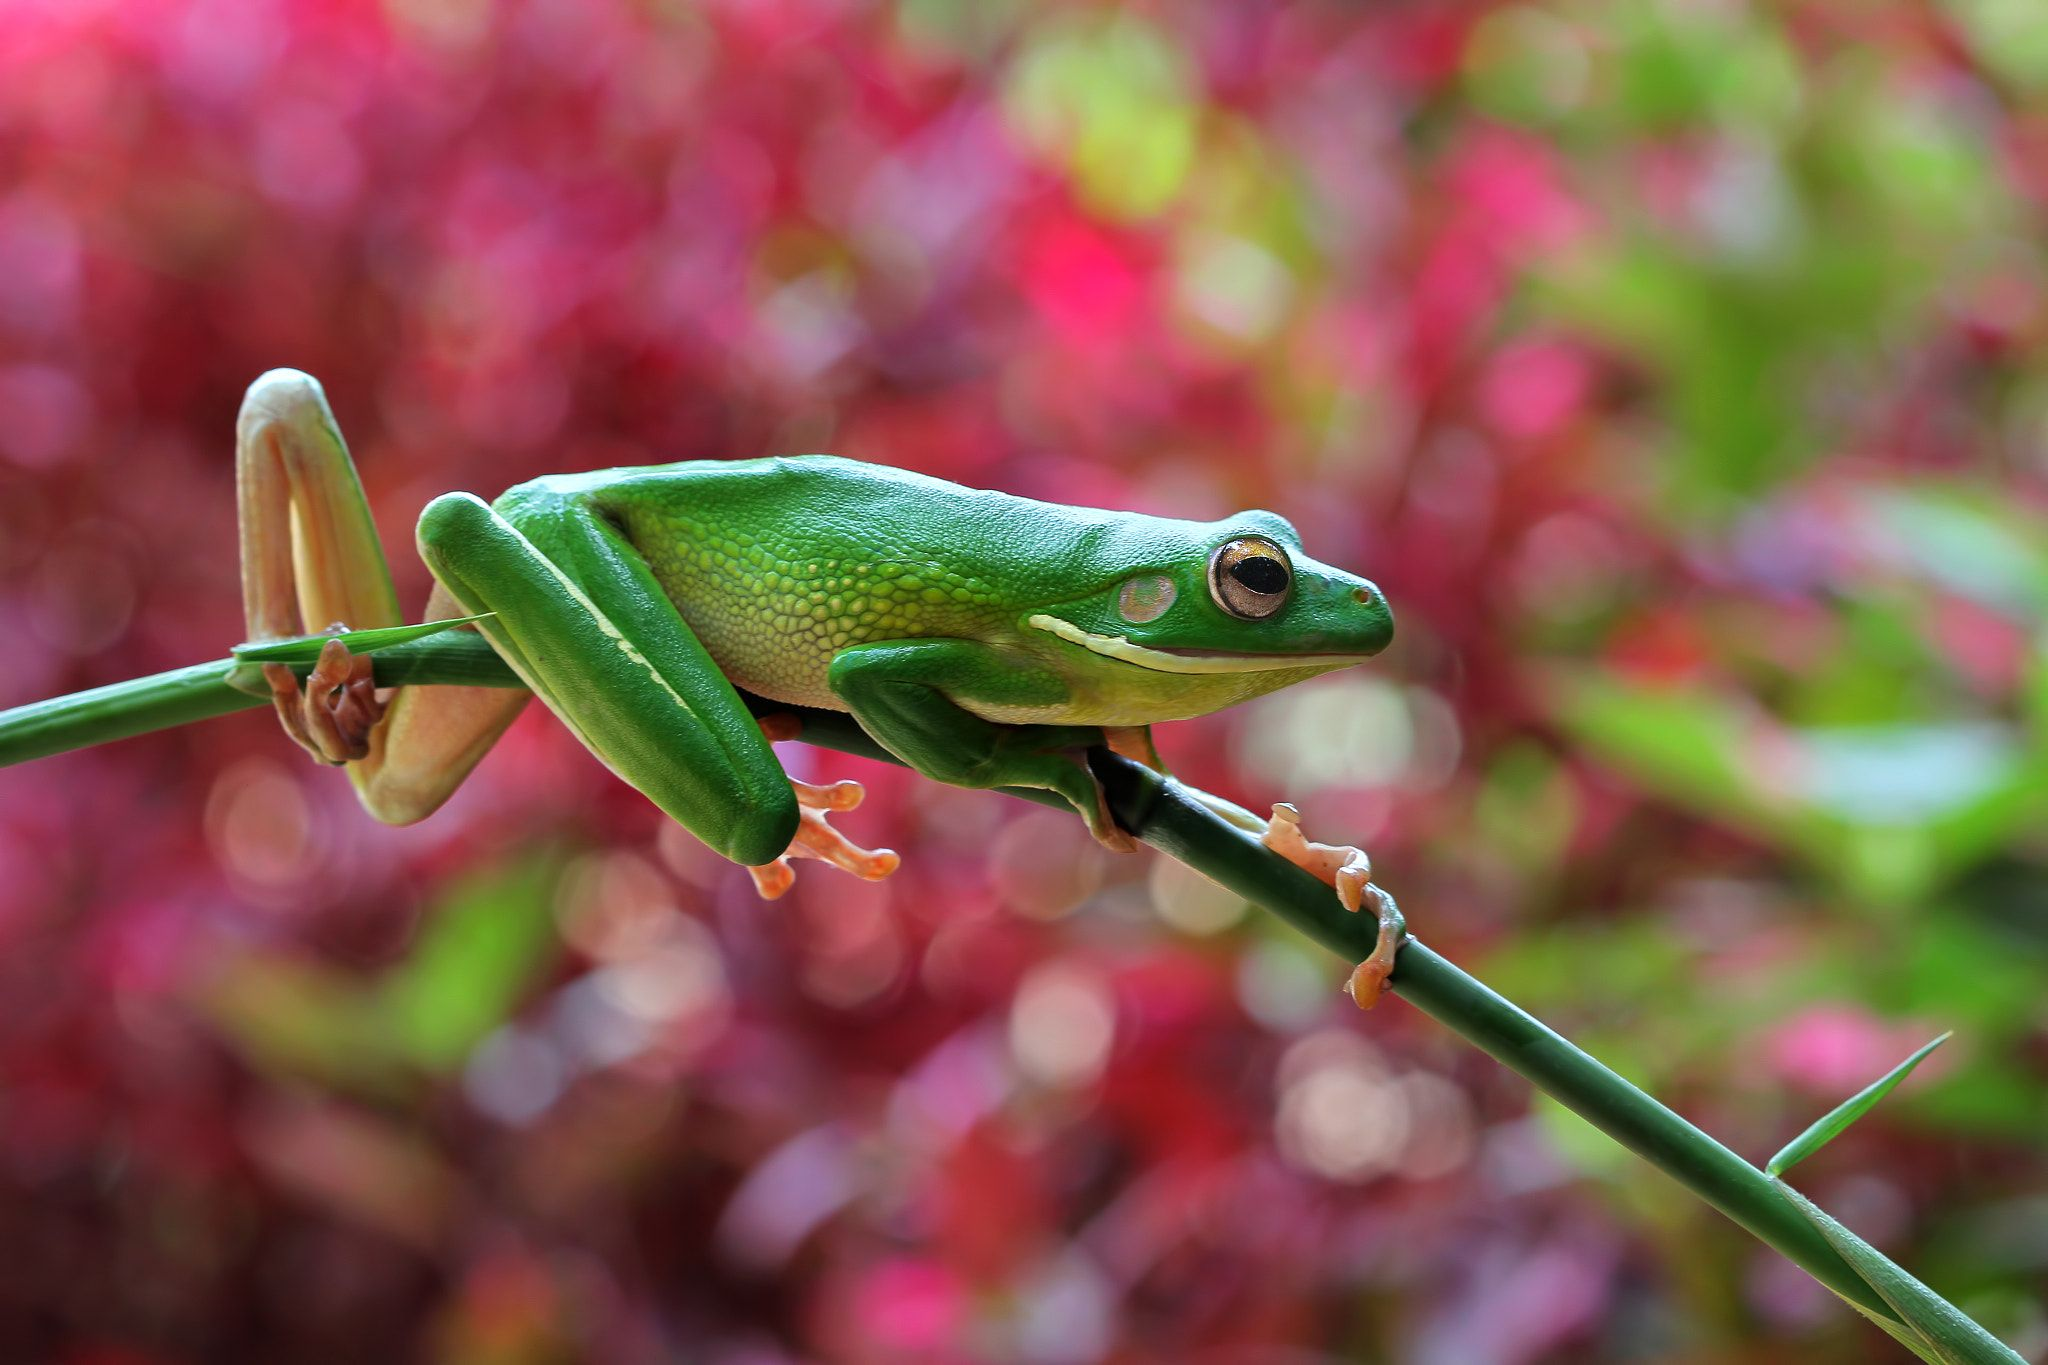 White lipped frog on branch null Frog, White lips, Branch